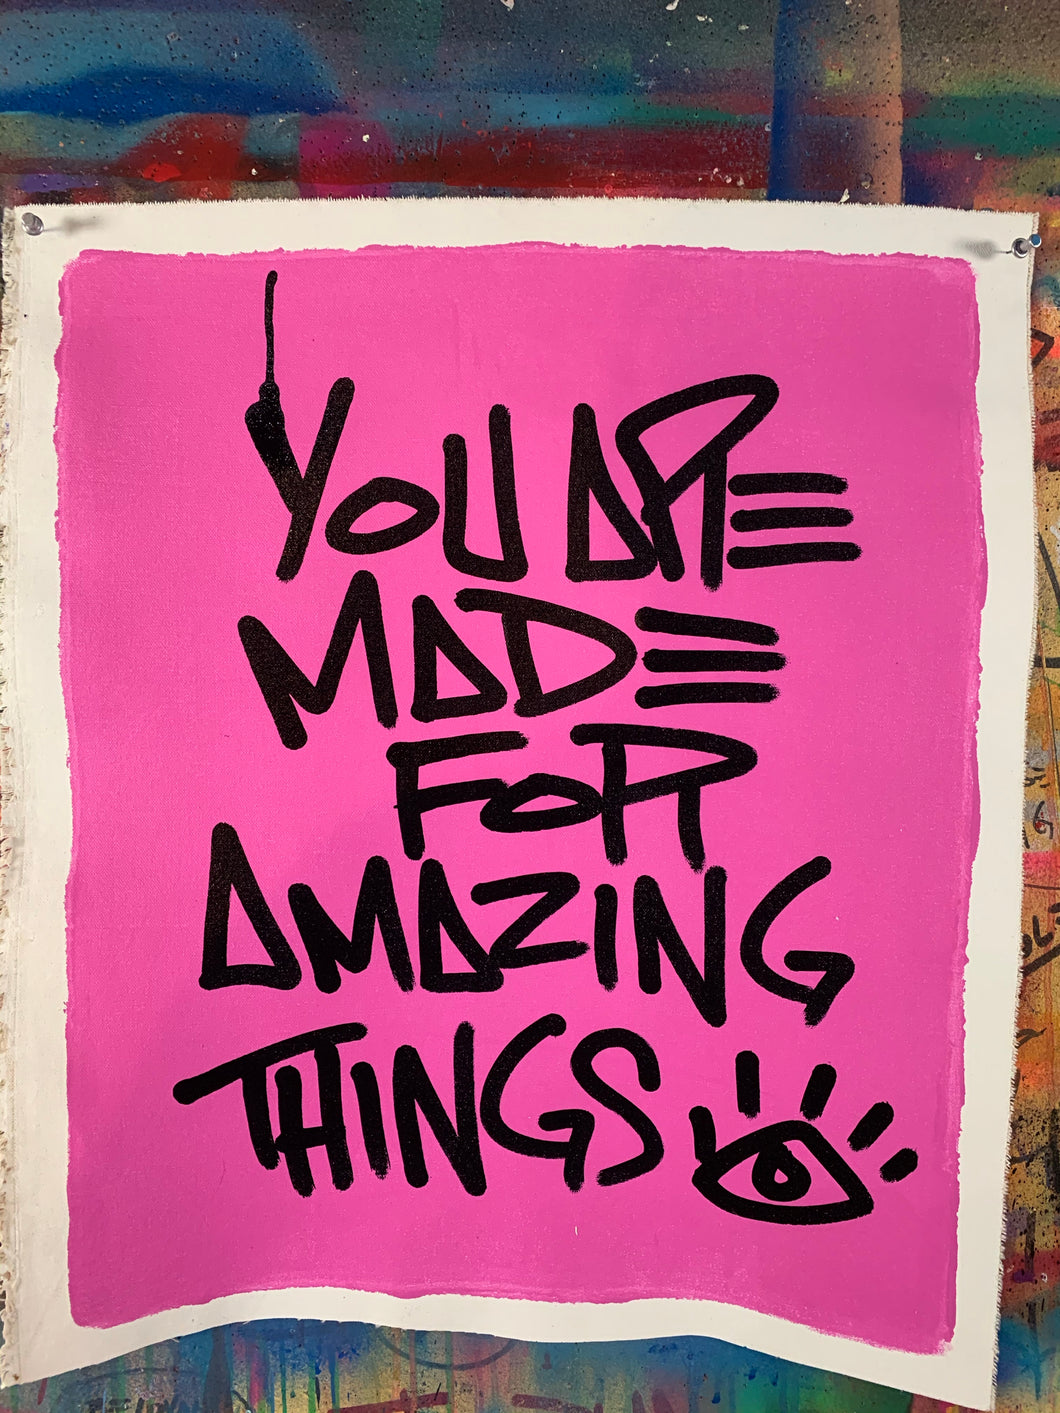 Amazing things mantra / cosmic pink